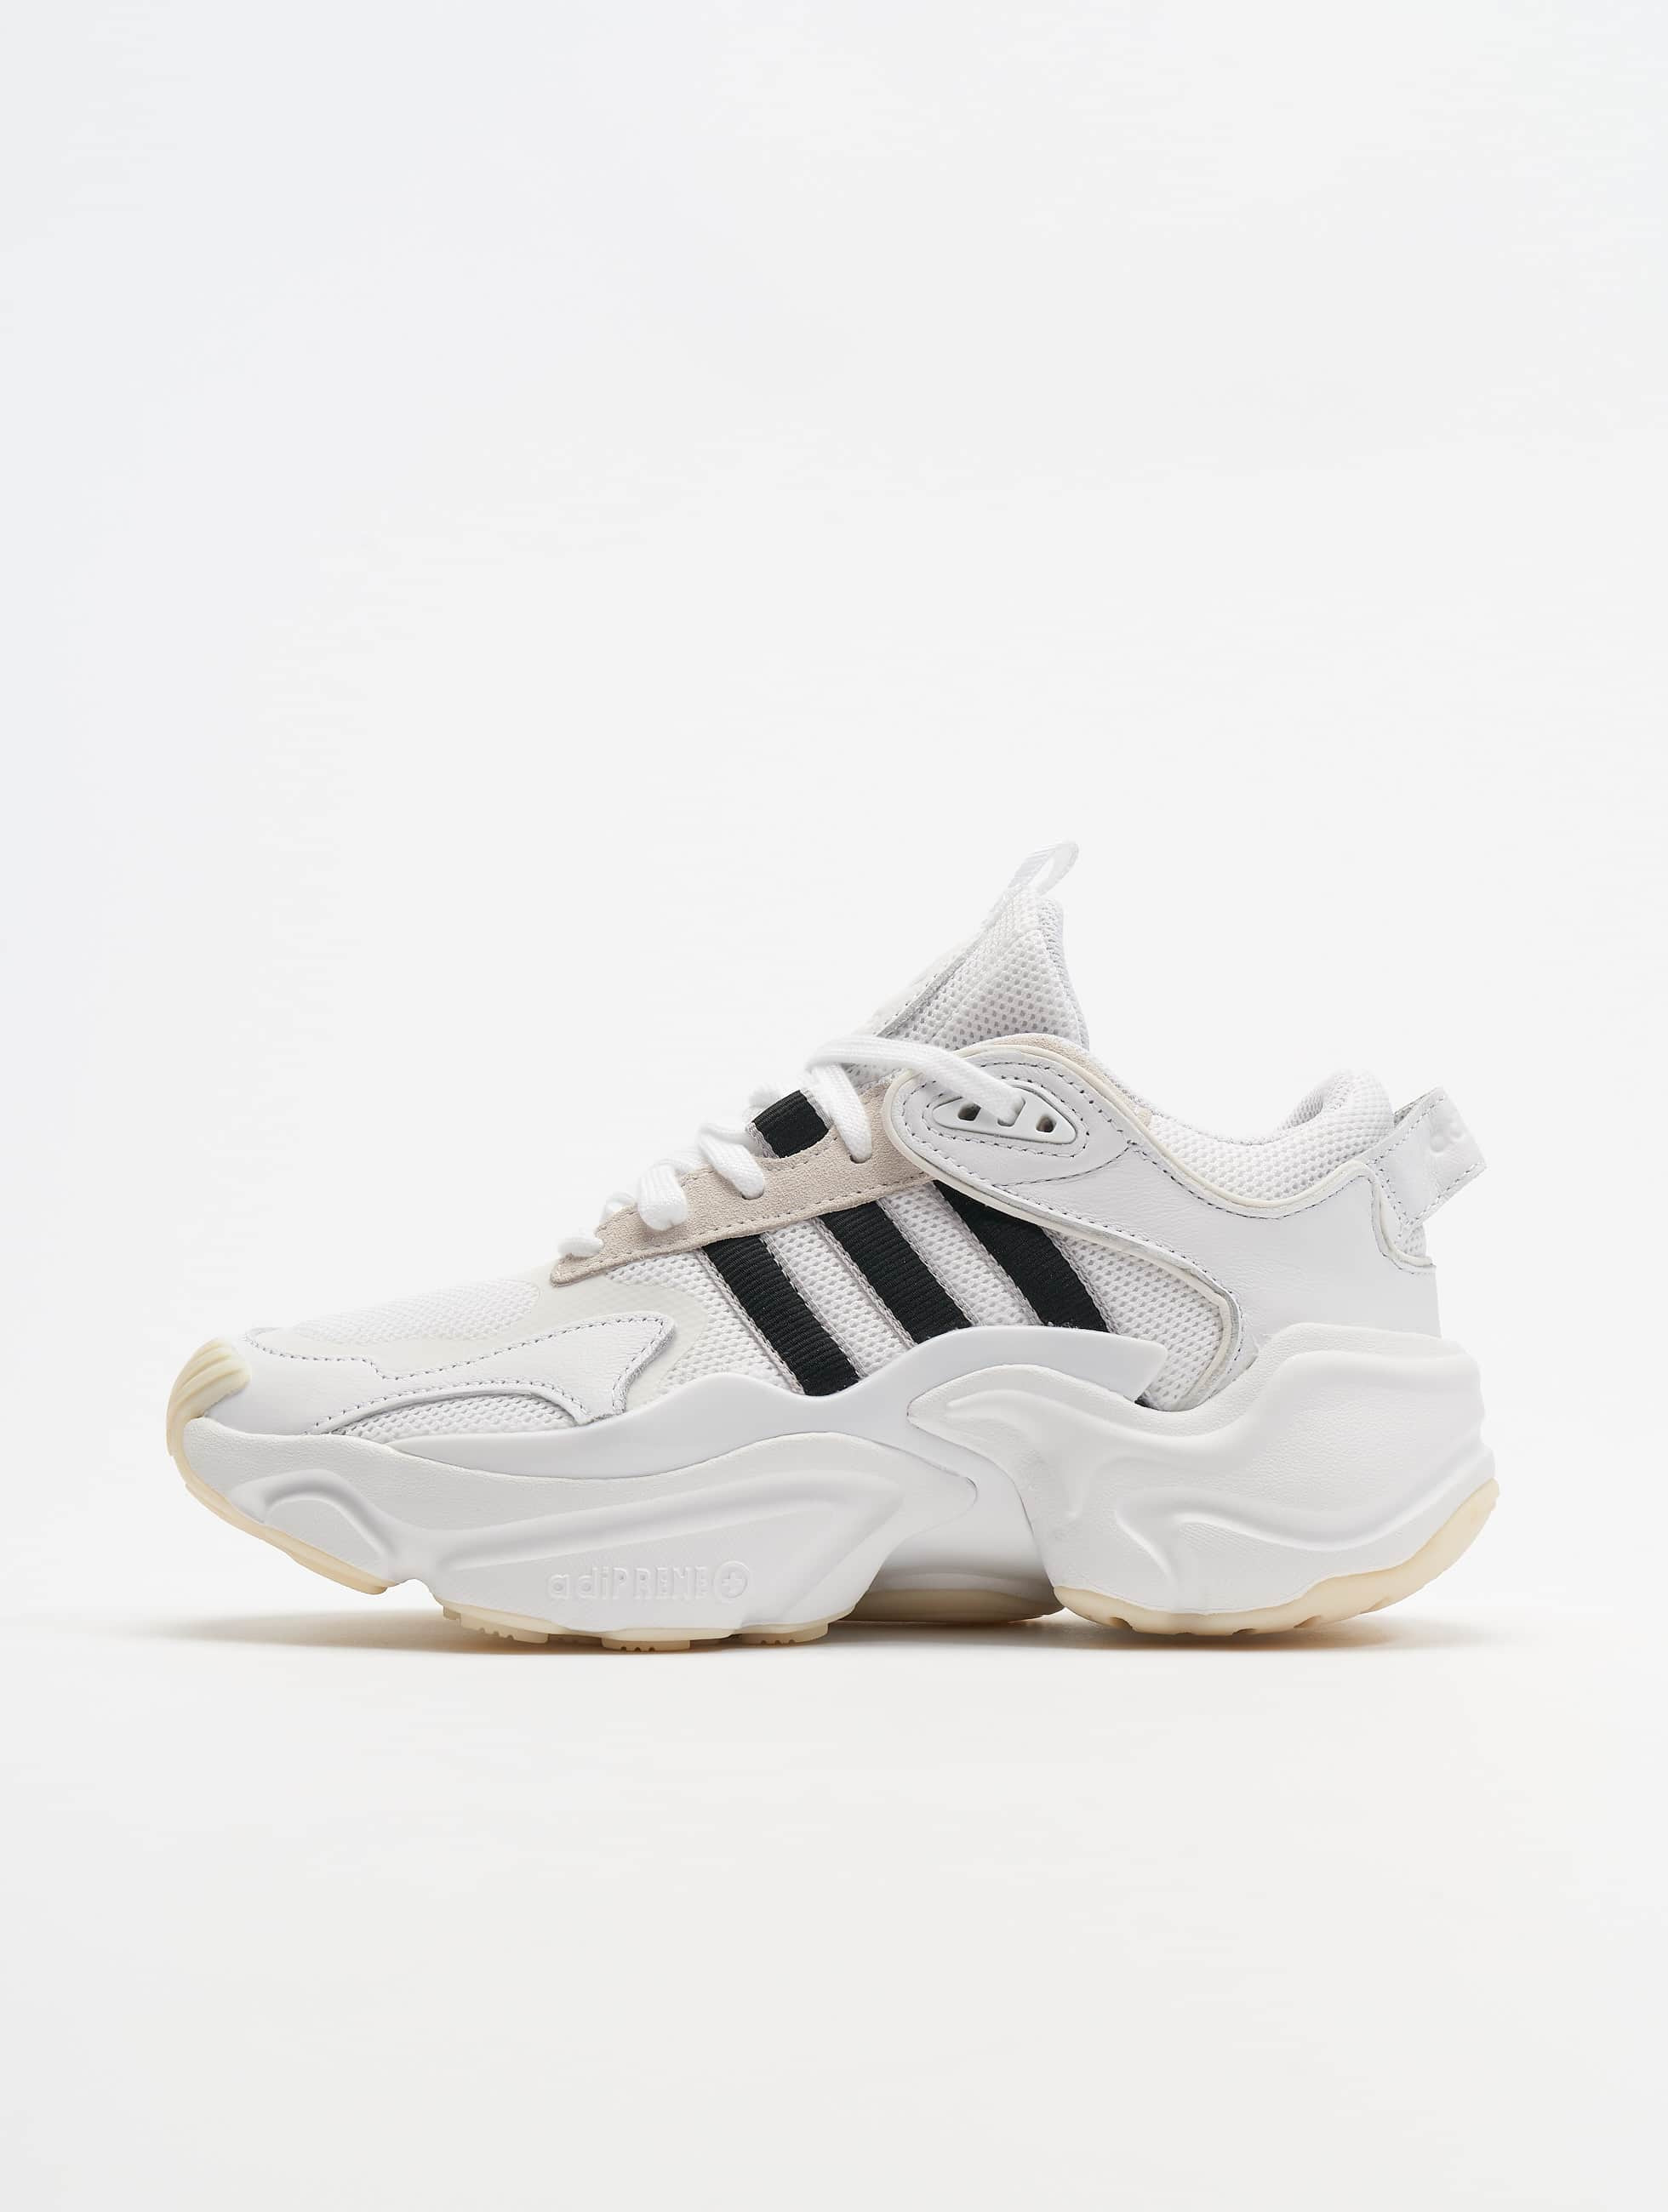 Adidas Originals Magmur Runner Sneakers WhiteCore BlackGrey